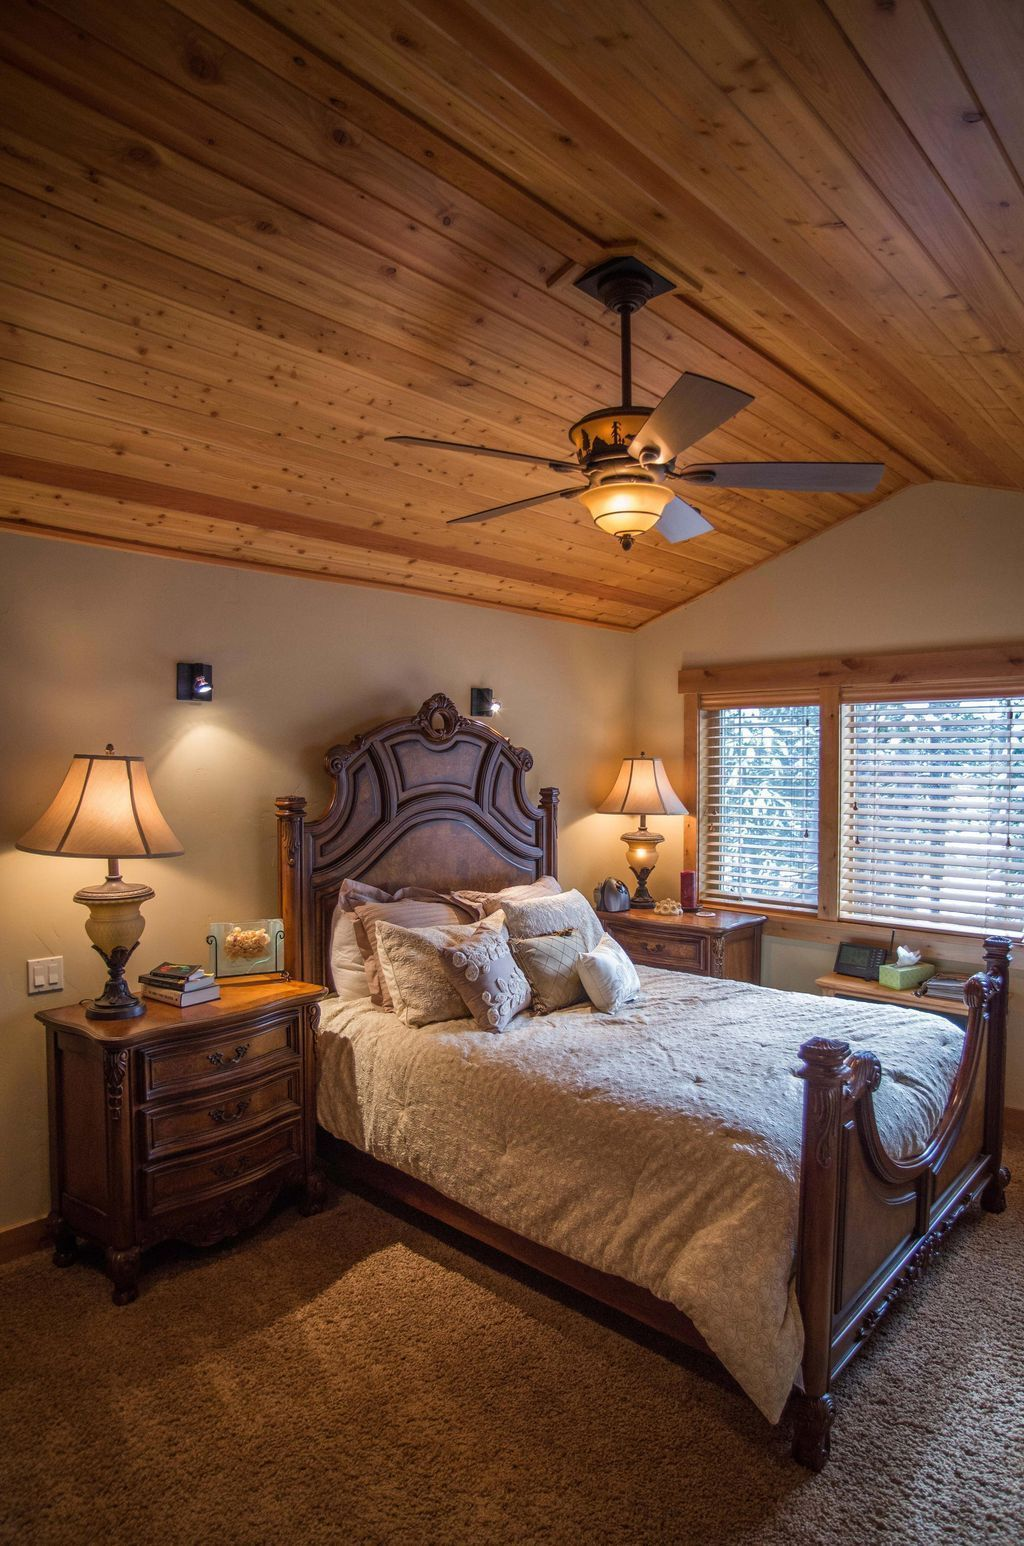 43 Romantic Rustic Bedroom Ideas | Rustic bedroom ...